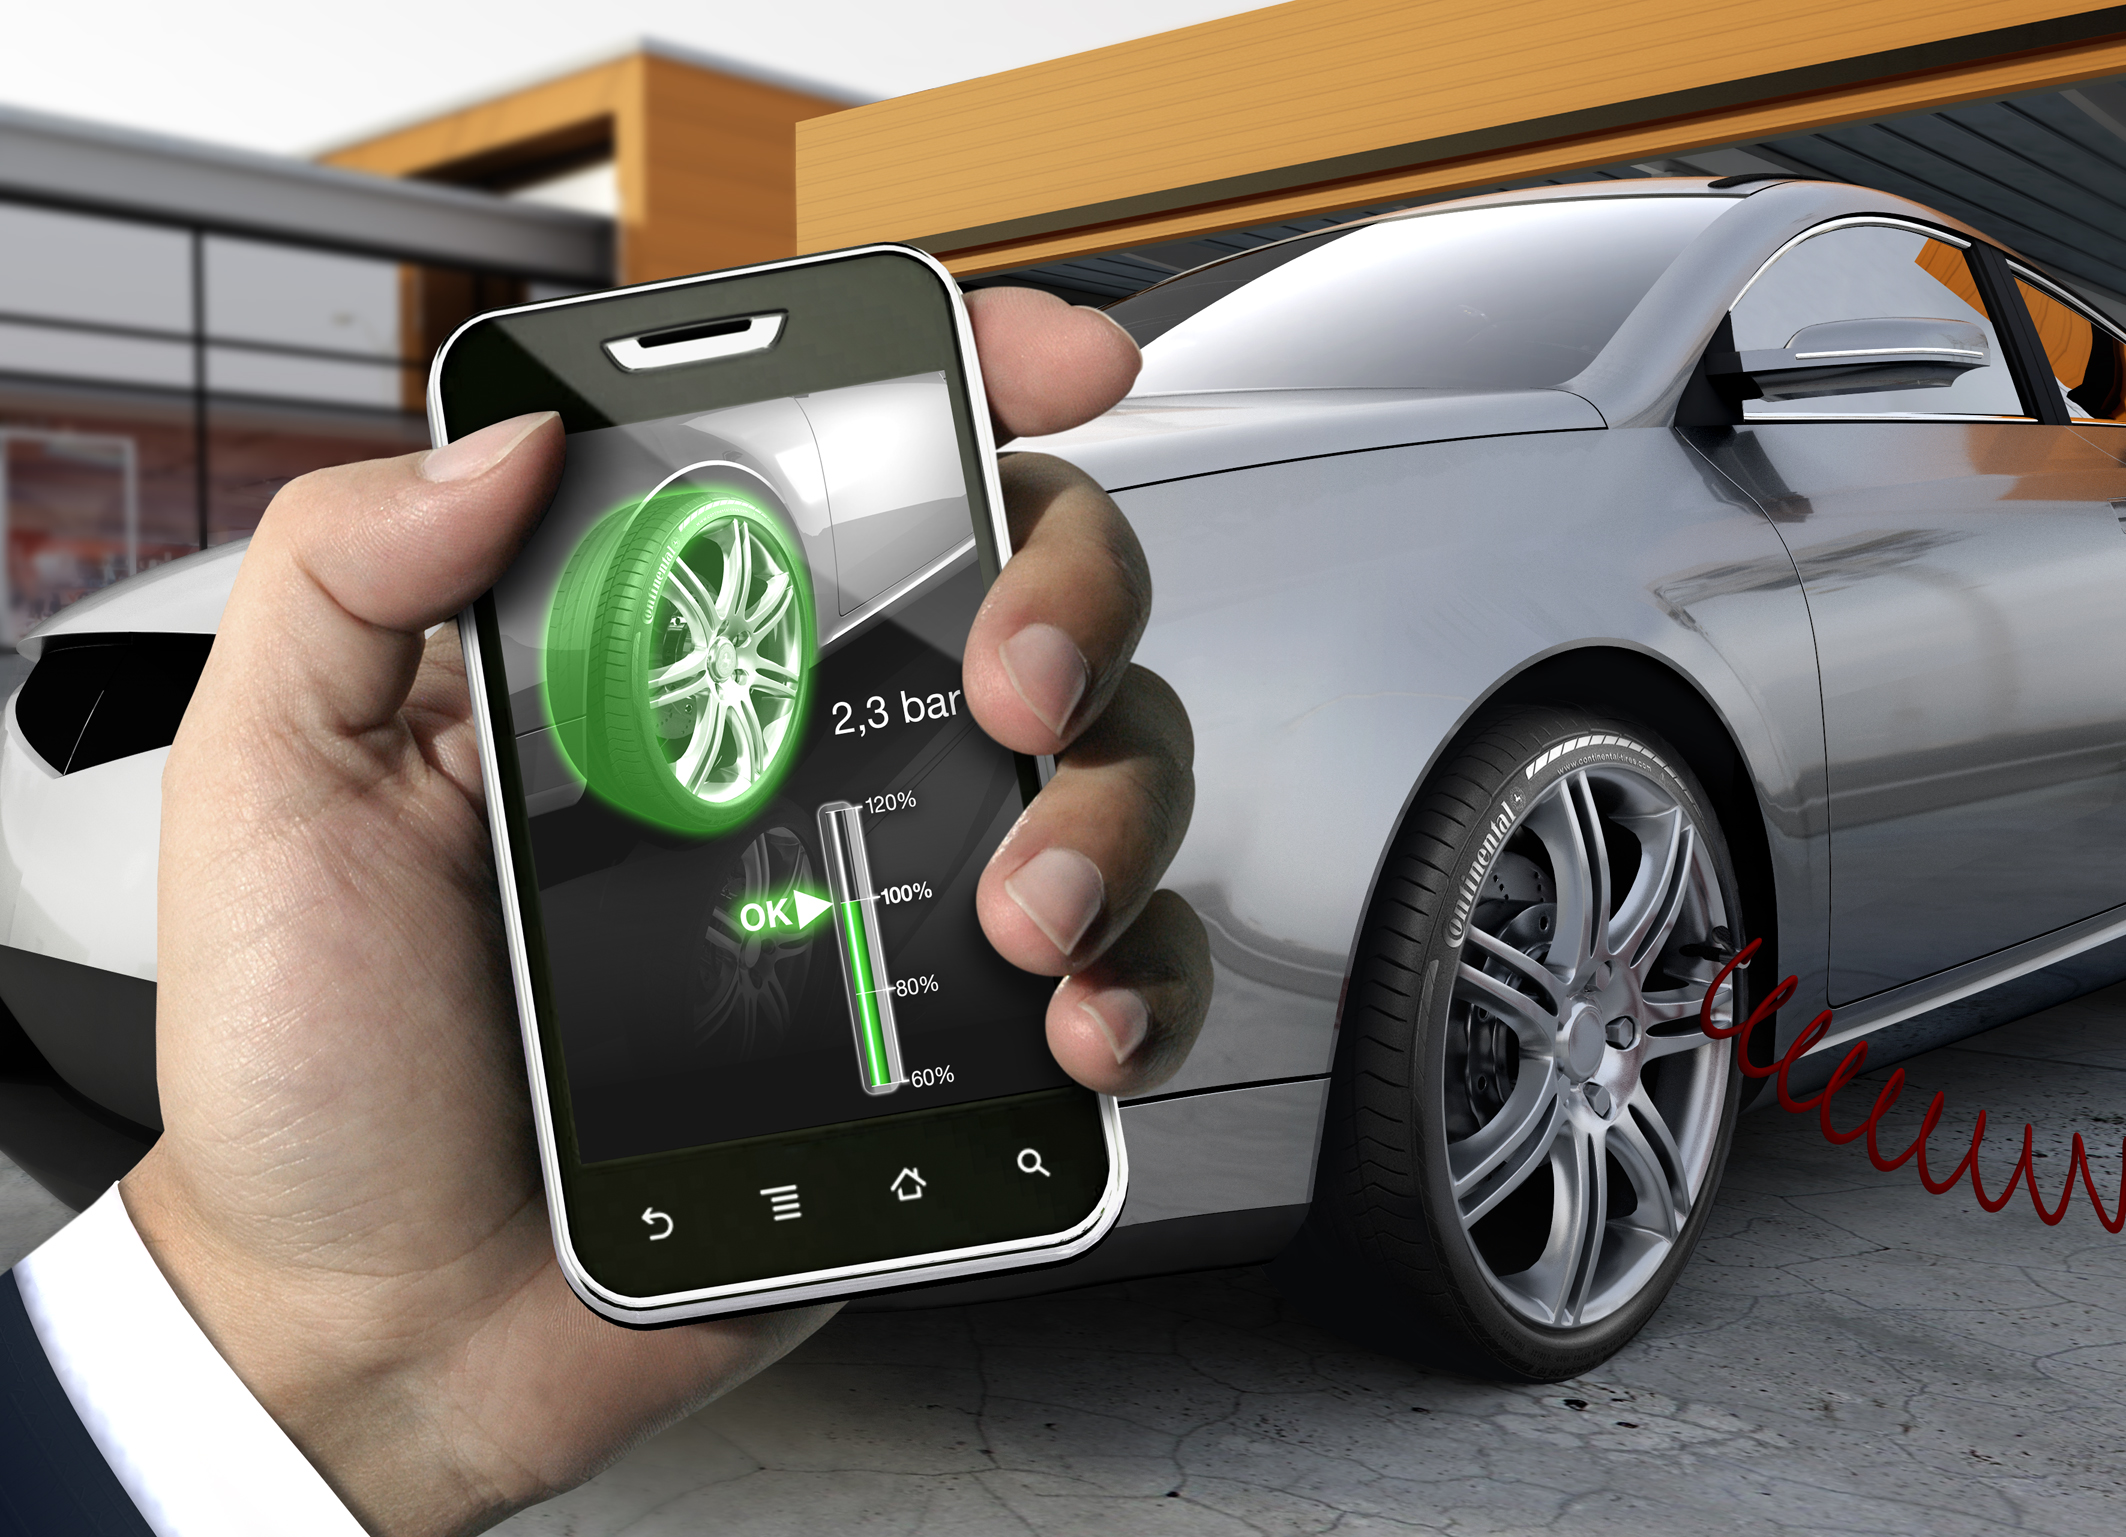 Continental's Filling Assistant Smartphones will help drivers to inflate the tires correctly